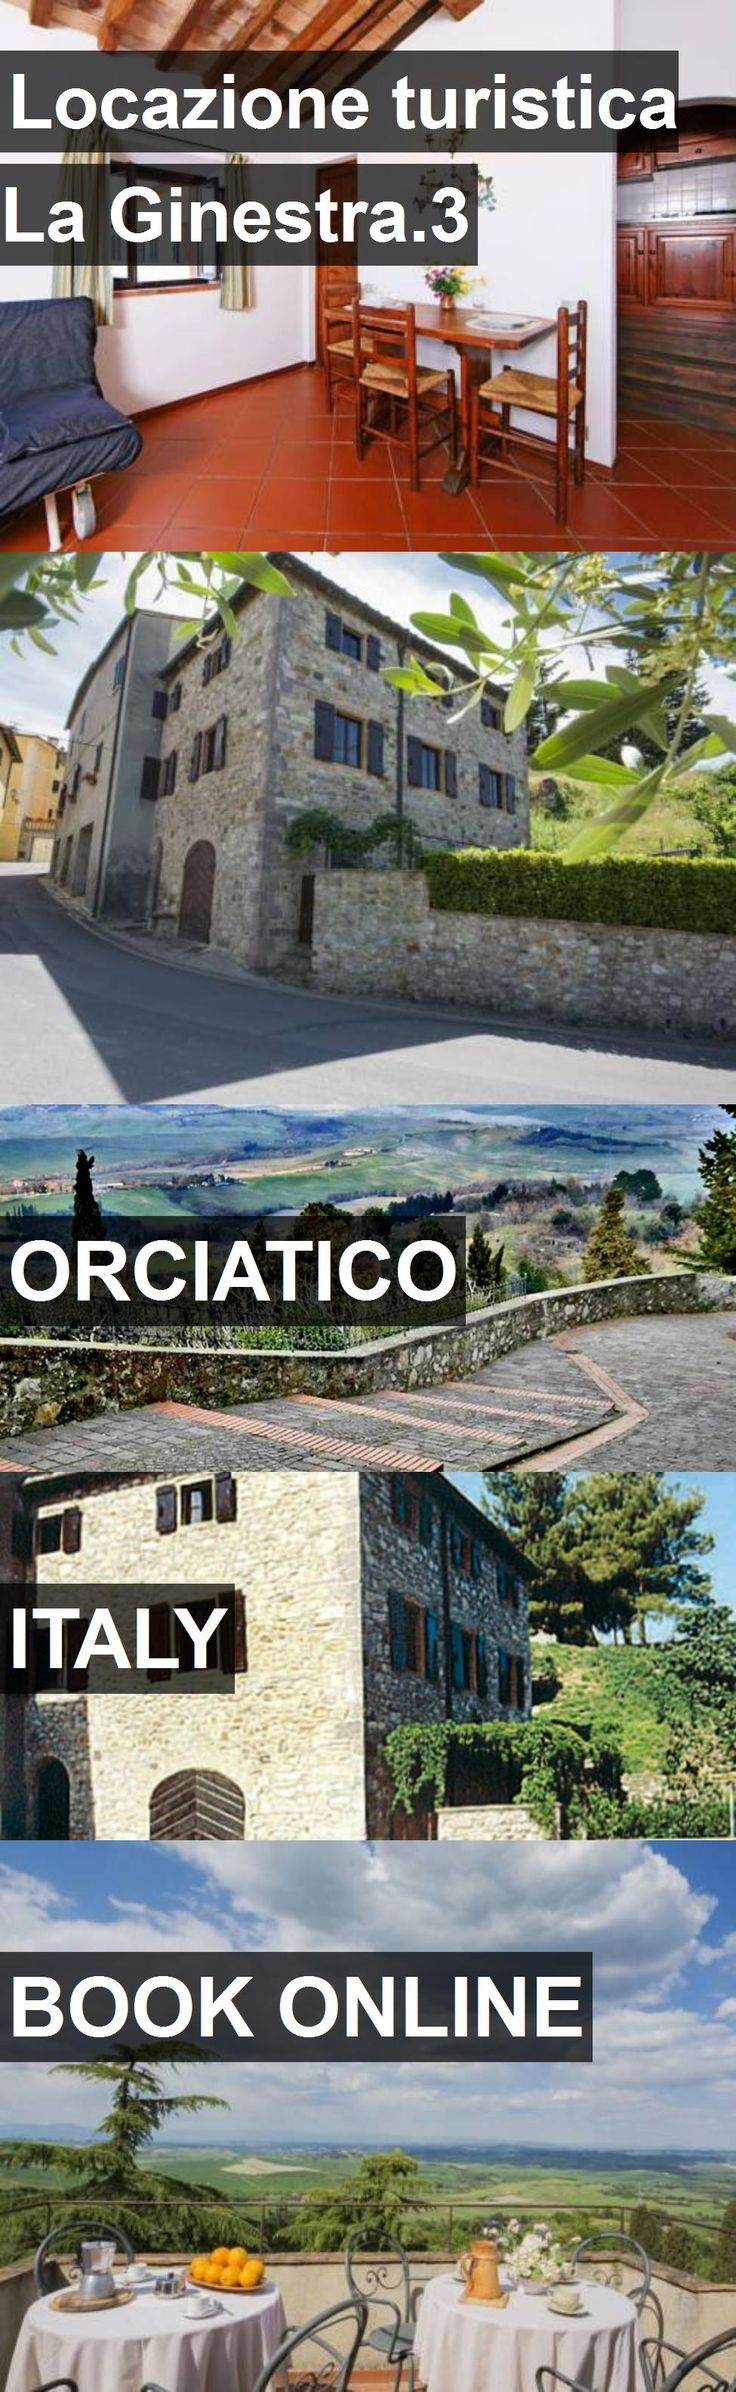 Hotel Locazione turistica La Ginestra.3 in Orciatico, Italy. For more information, photos, reviews and best prices please follow the link. #Italy #Orciatico #travel #vacation #hotel